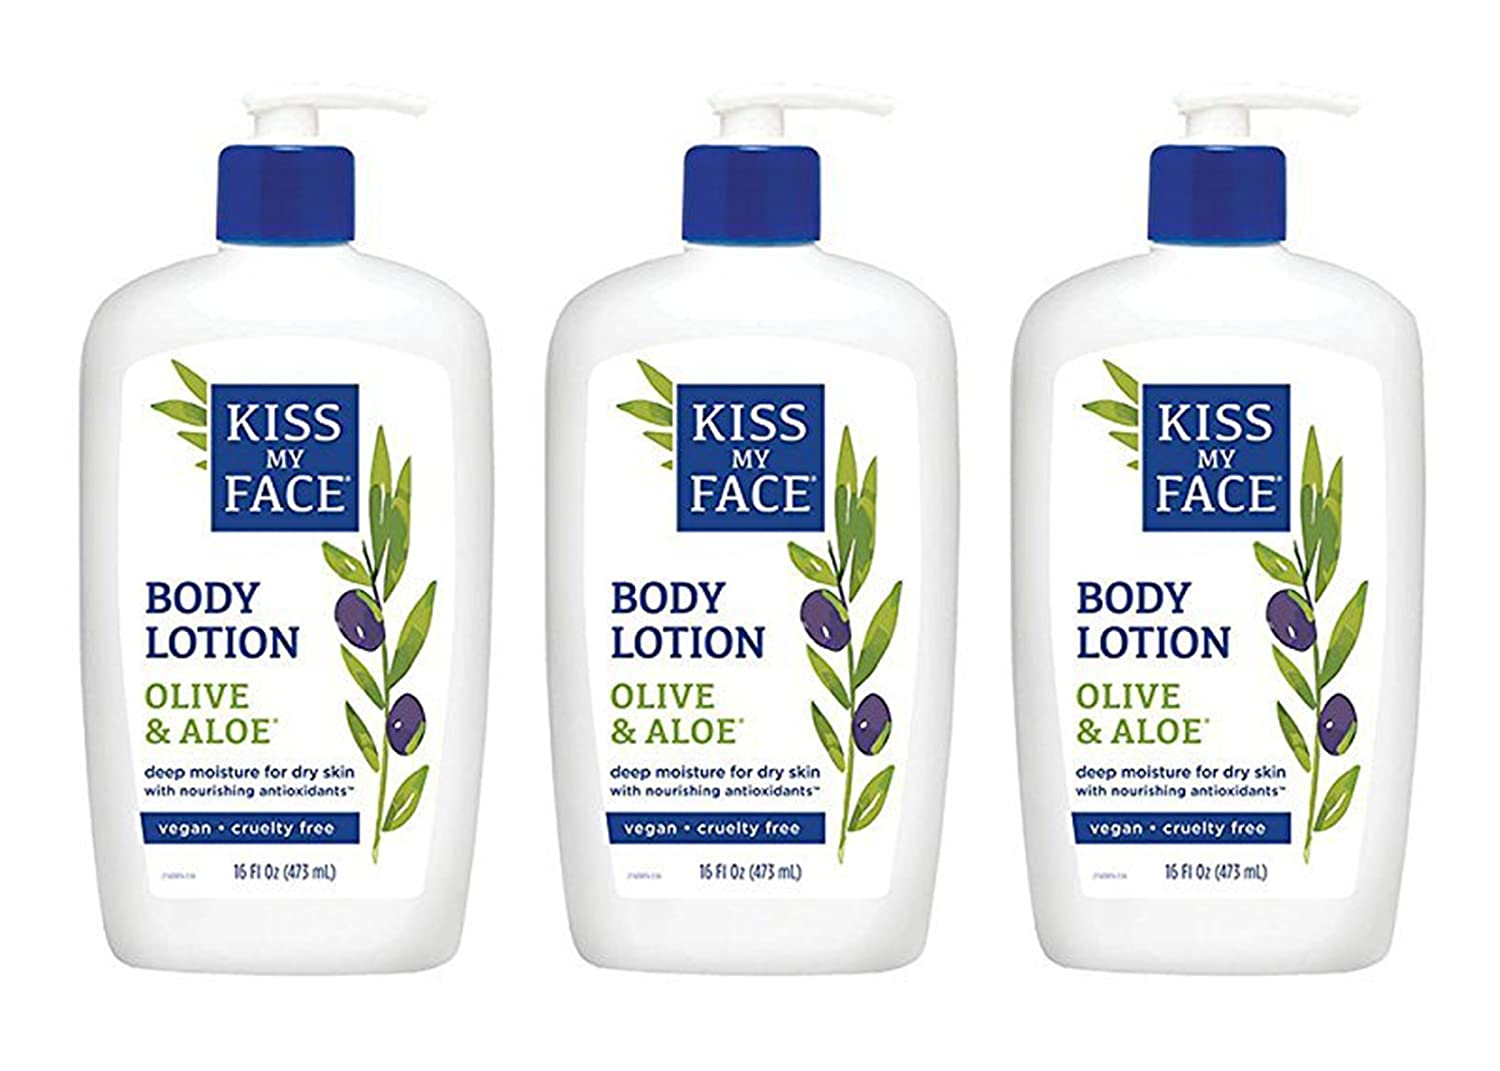 Kiss My Face Olive & Aloe Moisturizing Body Lotion, 16-Ounce Bottles (pack of 3)